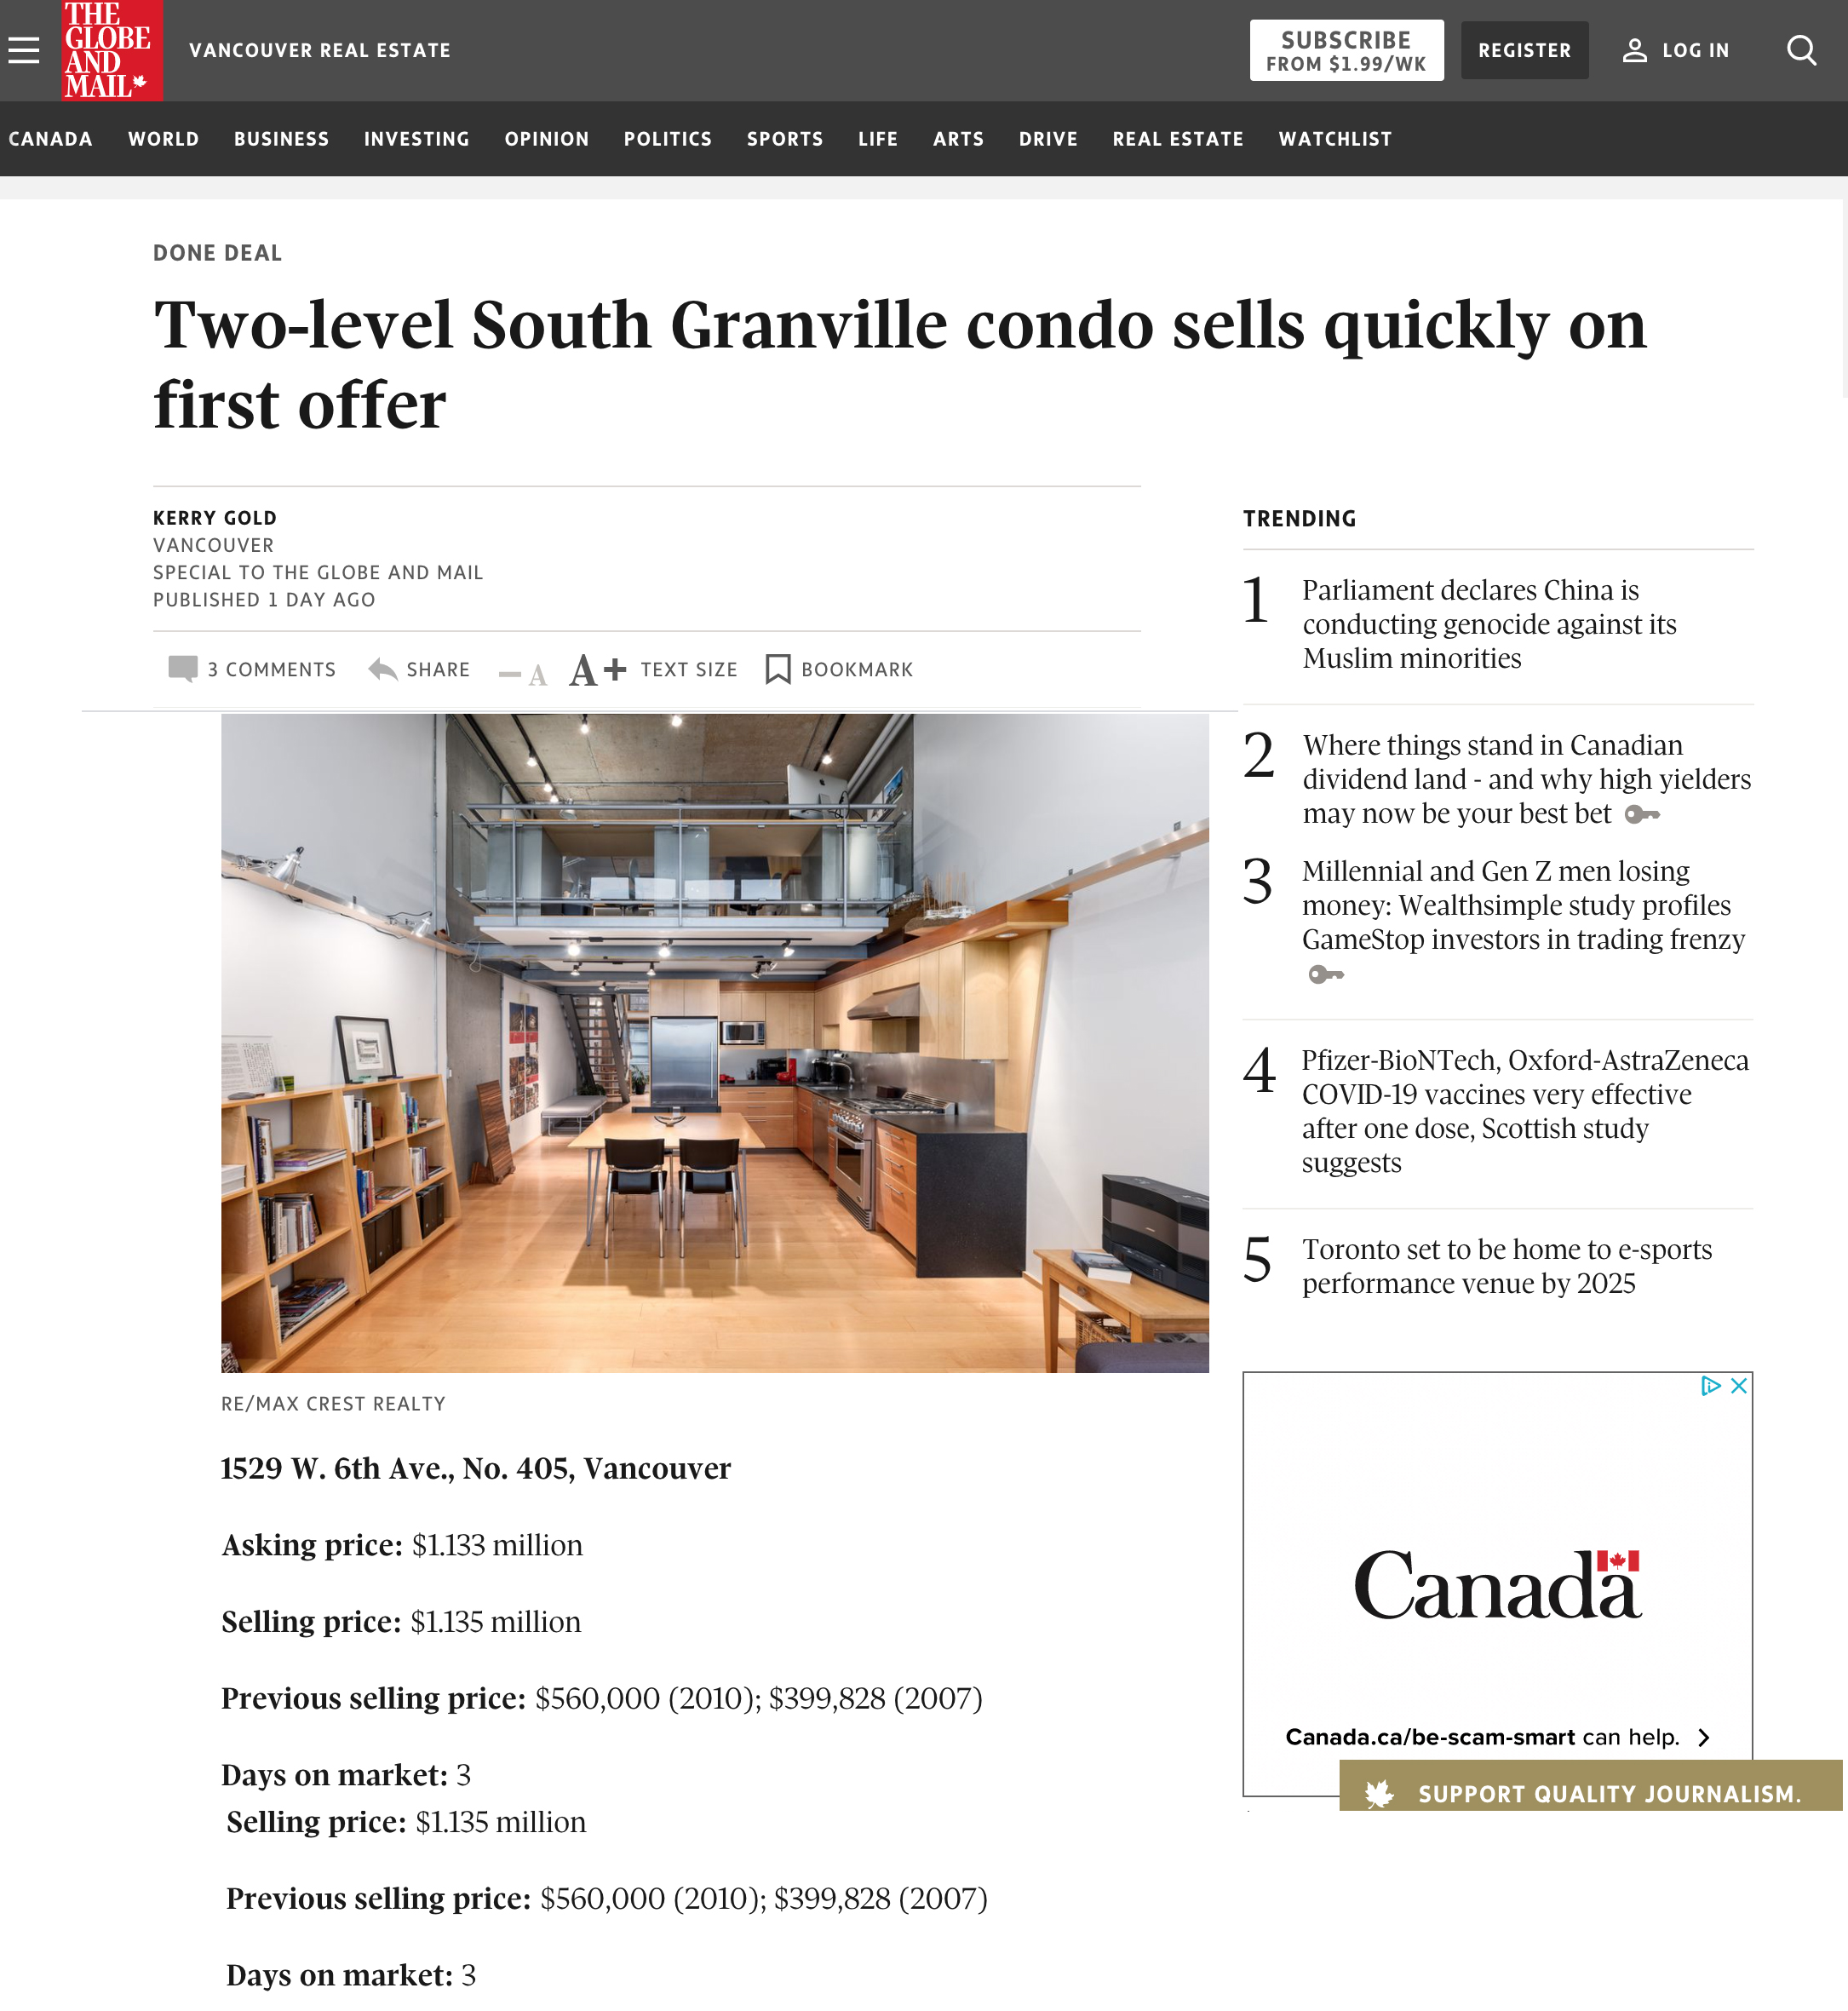 globe and mail done deal vancouver loft